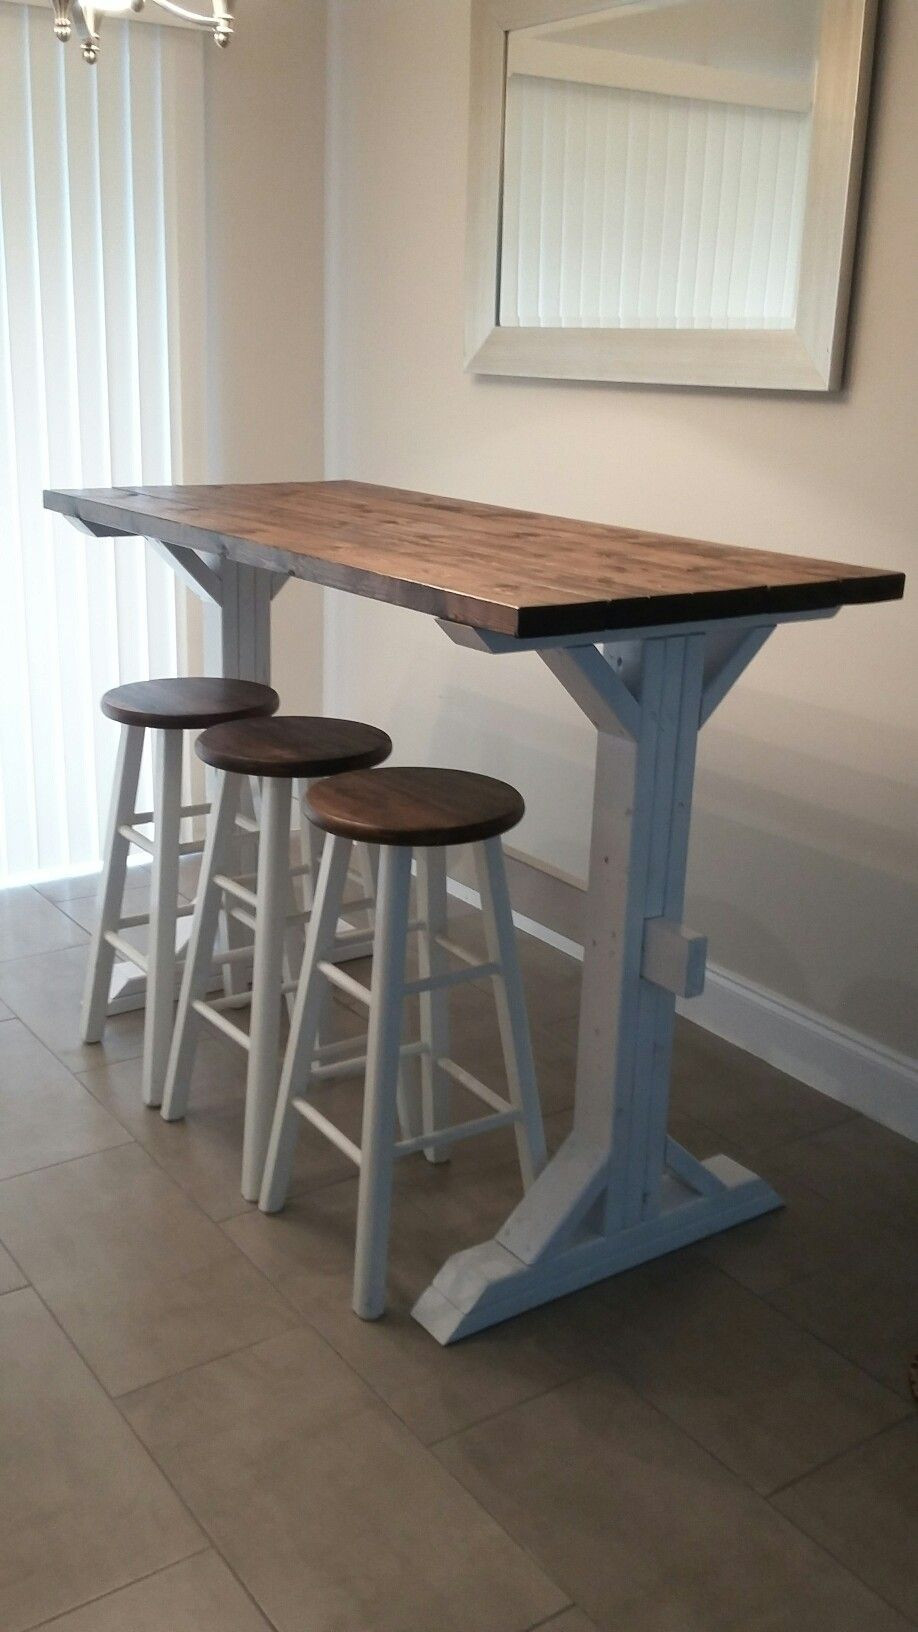 Best ideas about DIY Bar Height Table . Save or Pin Farmhouse style bar height table DIY Now.